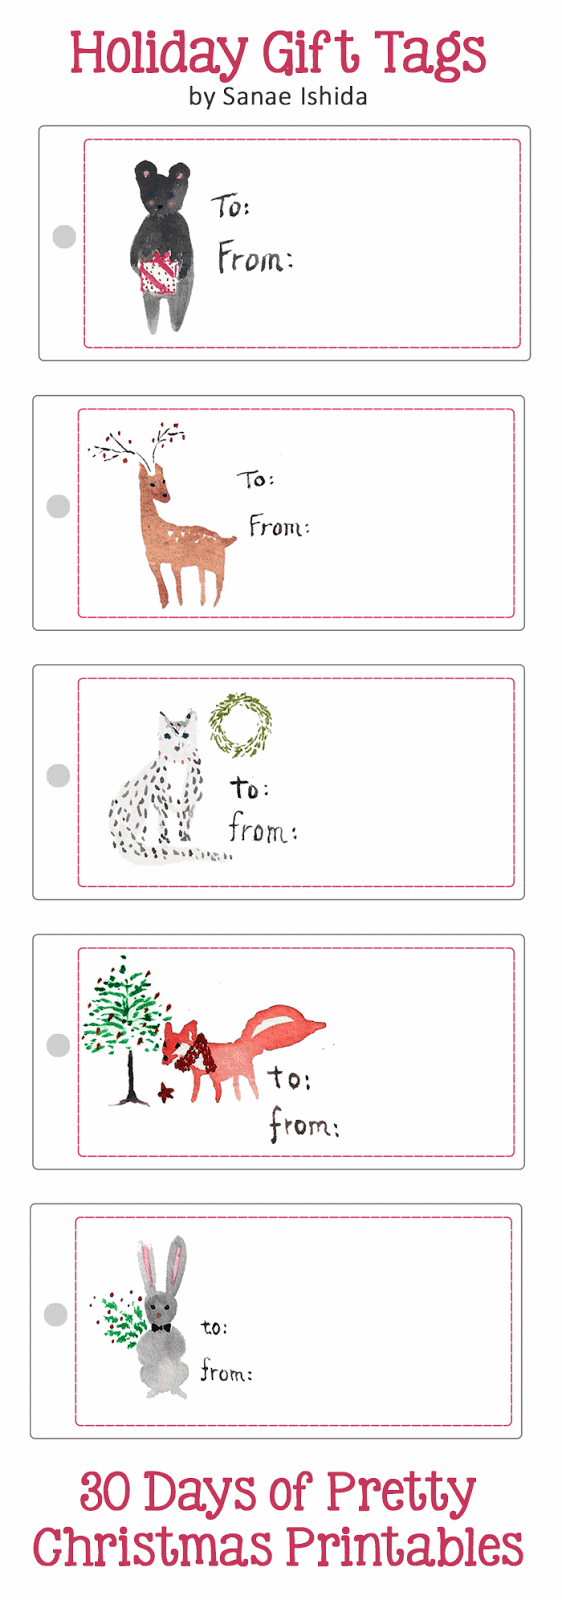 Beautiful hand-painted holiday gift tags freebie by Sanae Ishida. Blog series hosted by GradeONEderfulDesigns.com